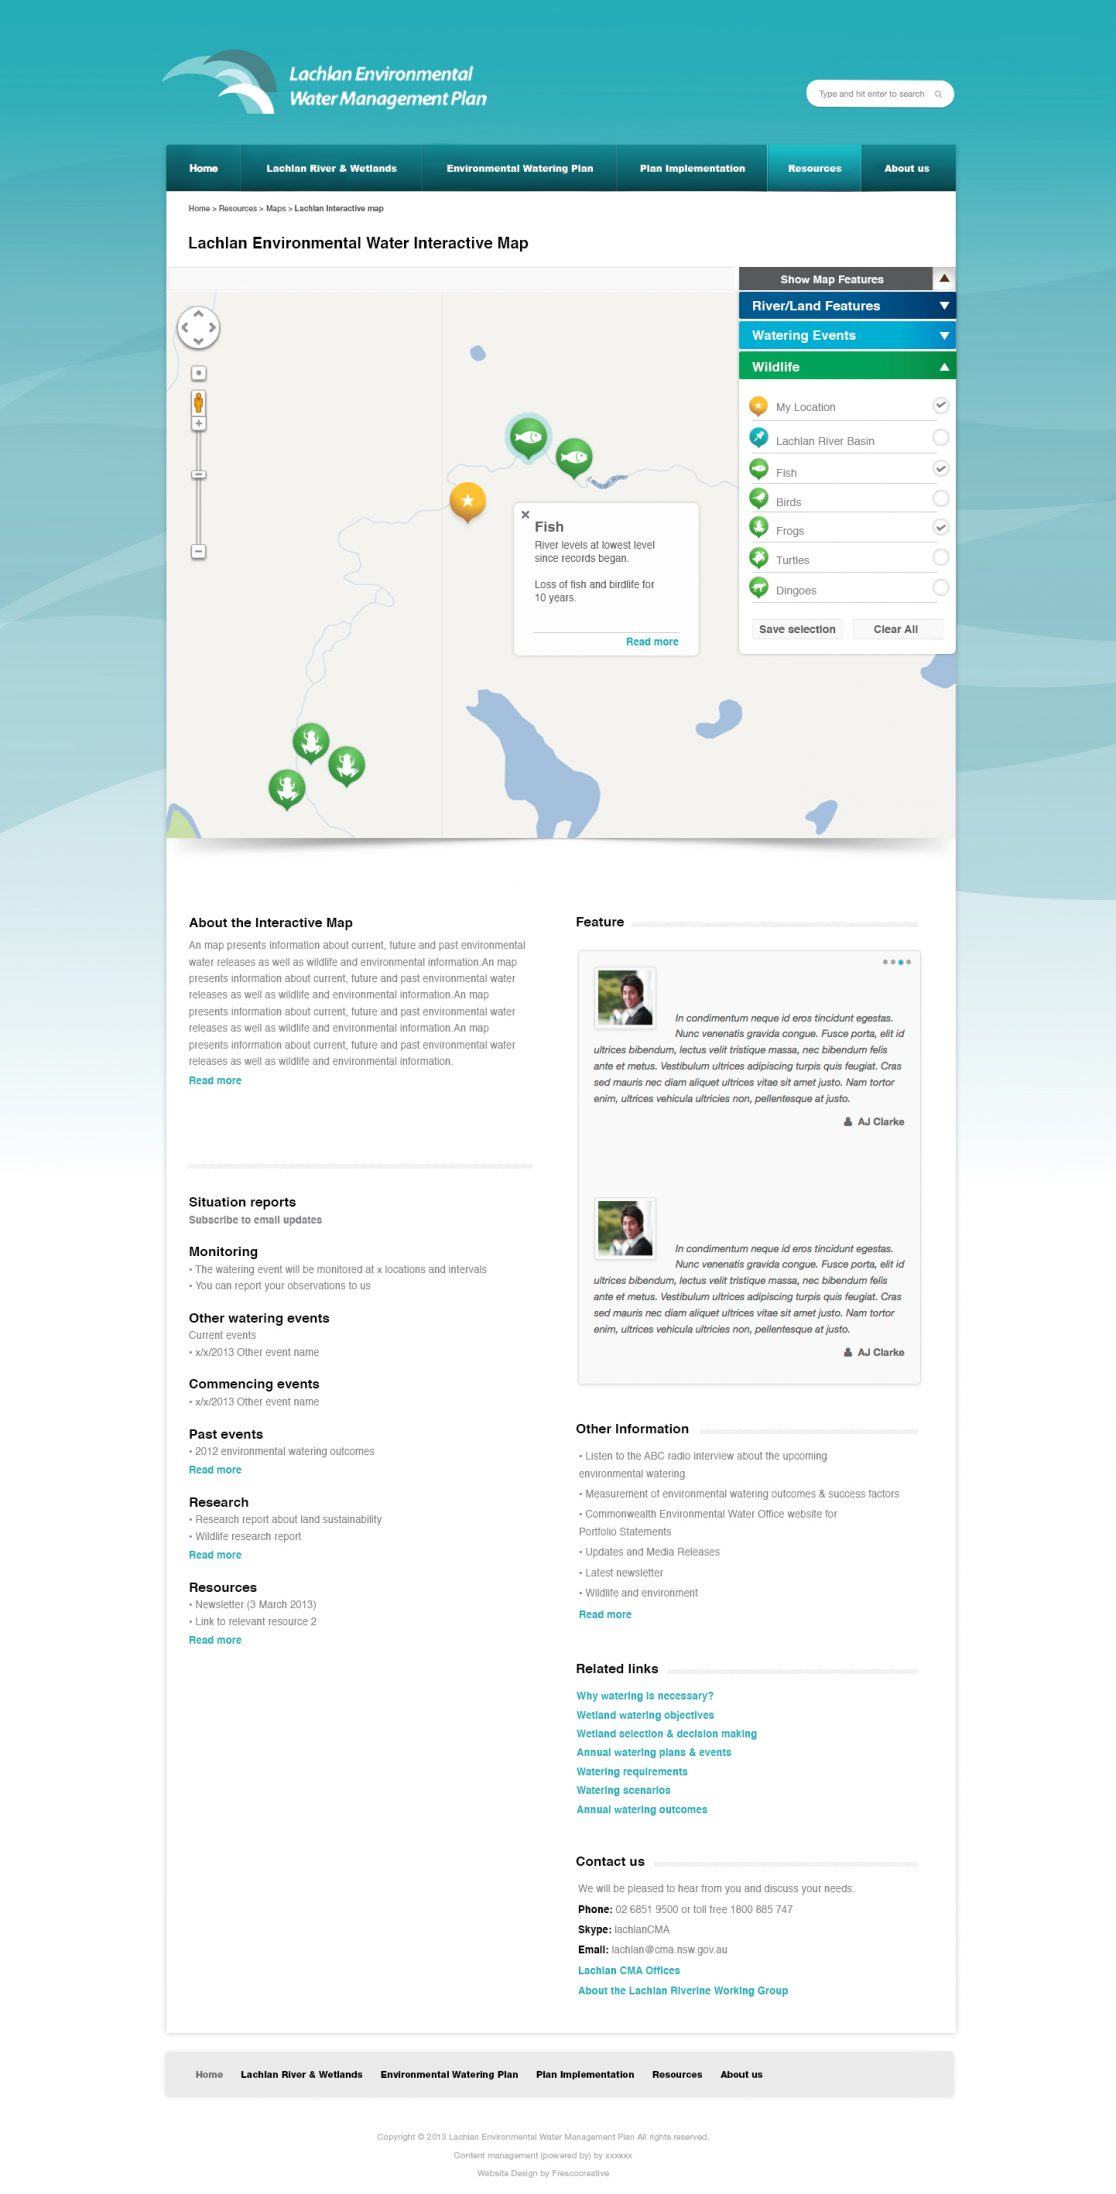 Lachlan Riverine Working Group - Government Website and Icon and Map Design